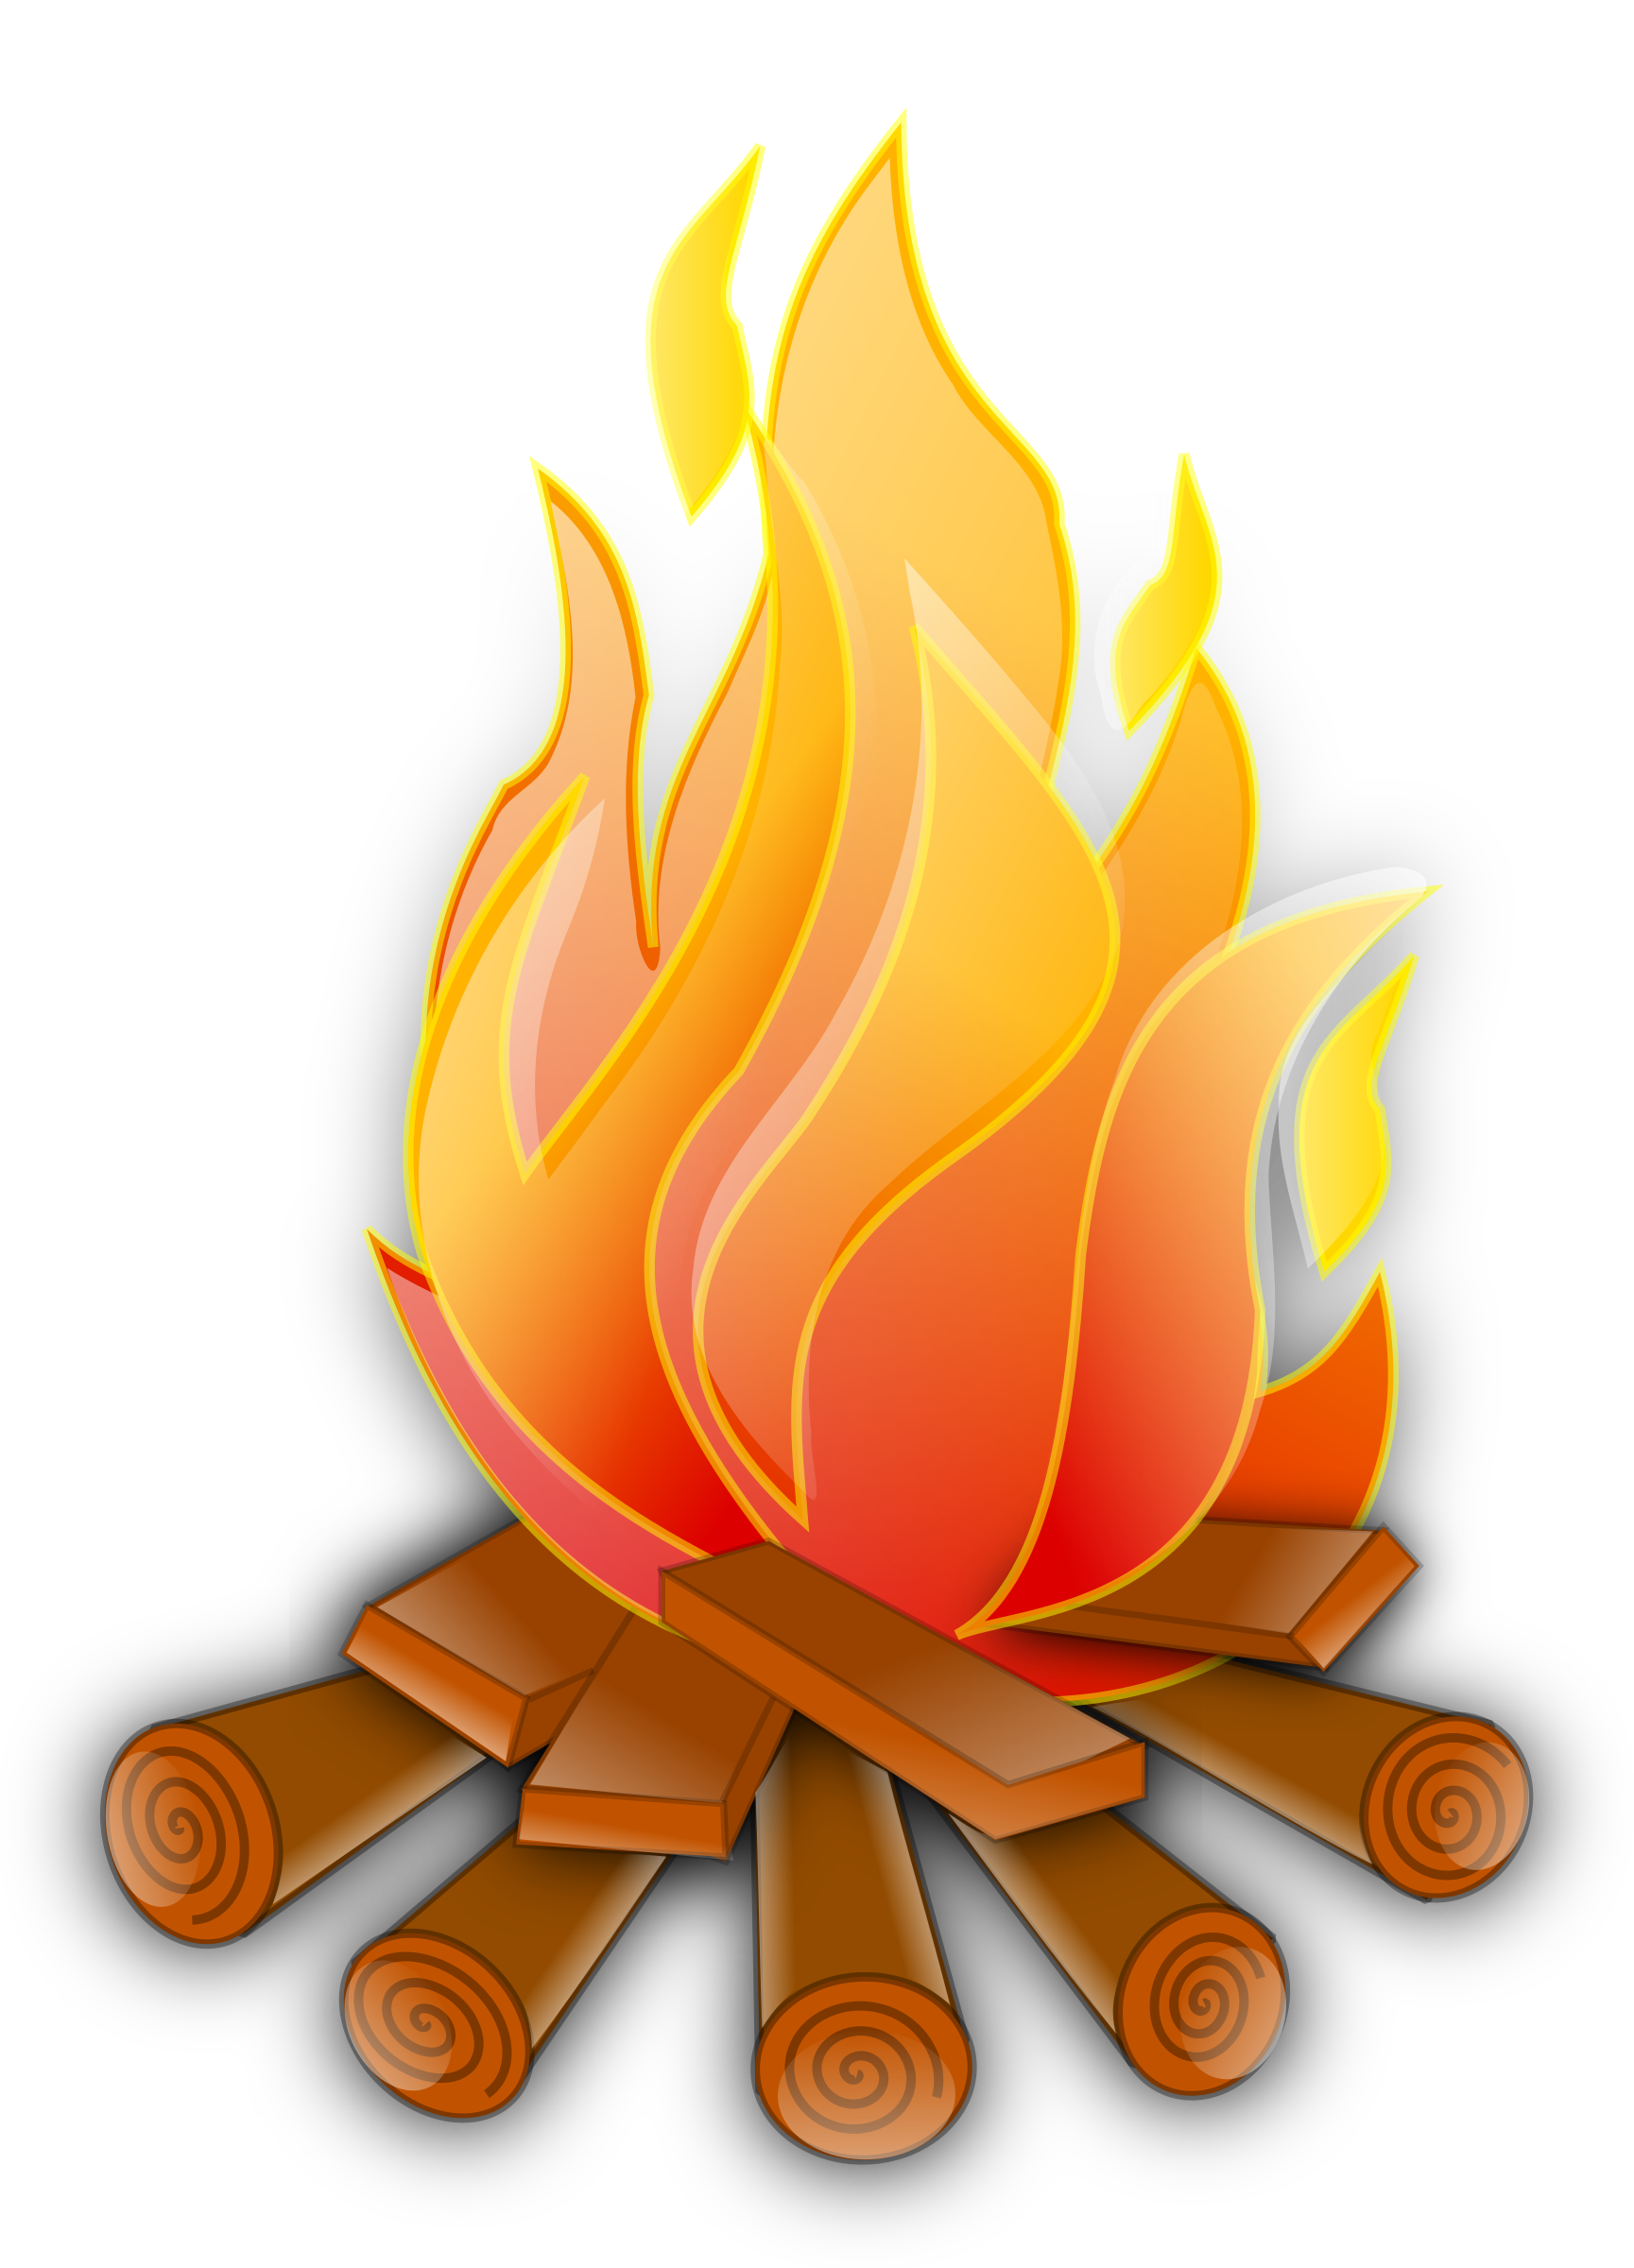 Wood Fire Clipart Clip art of Fire Clipart #769 — Clipartwork.